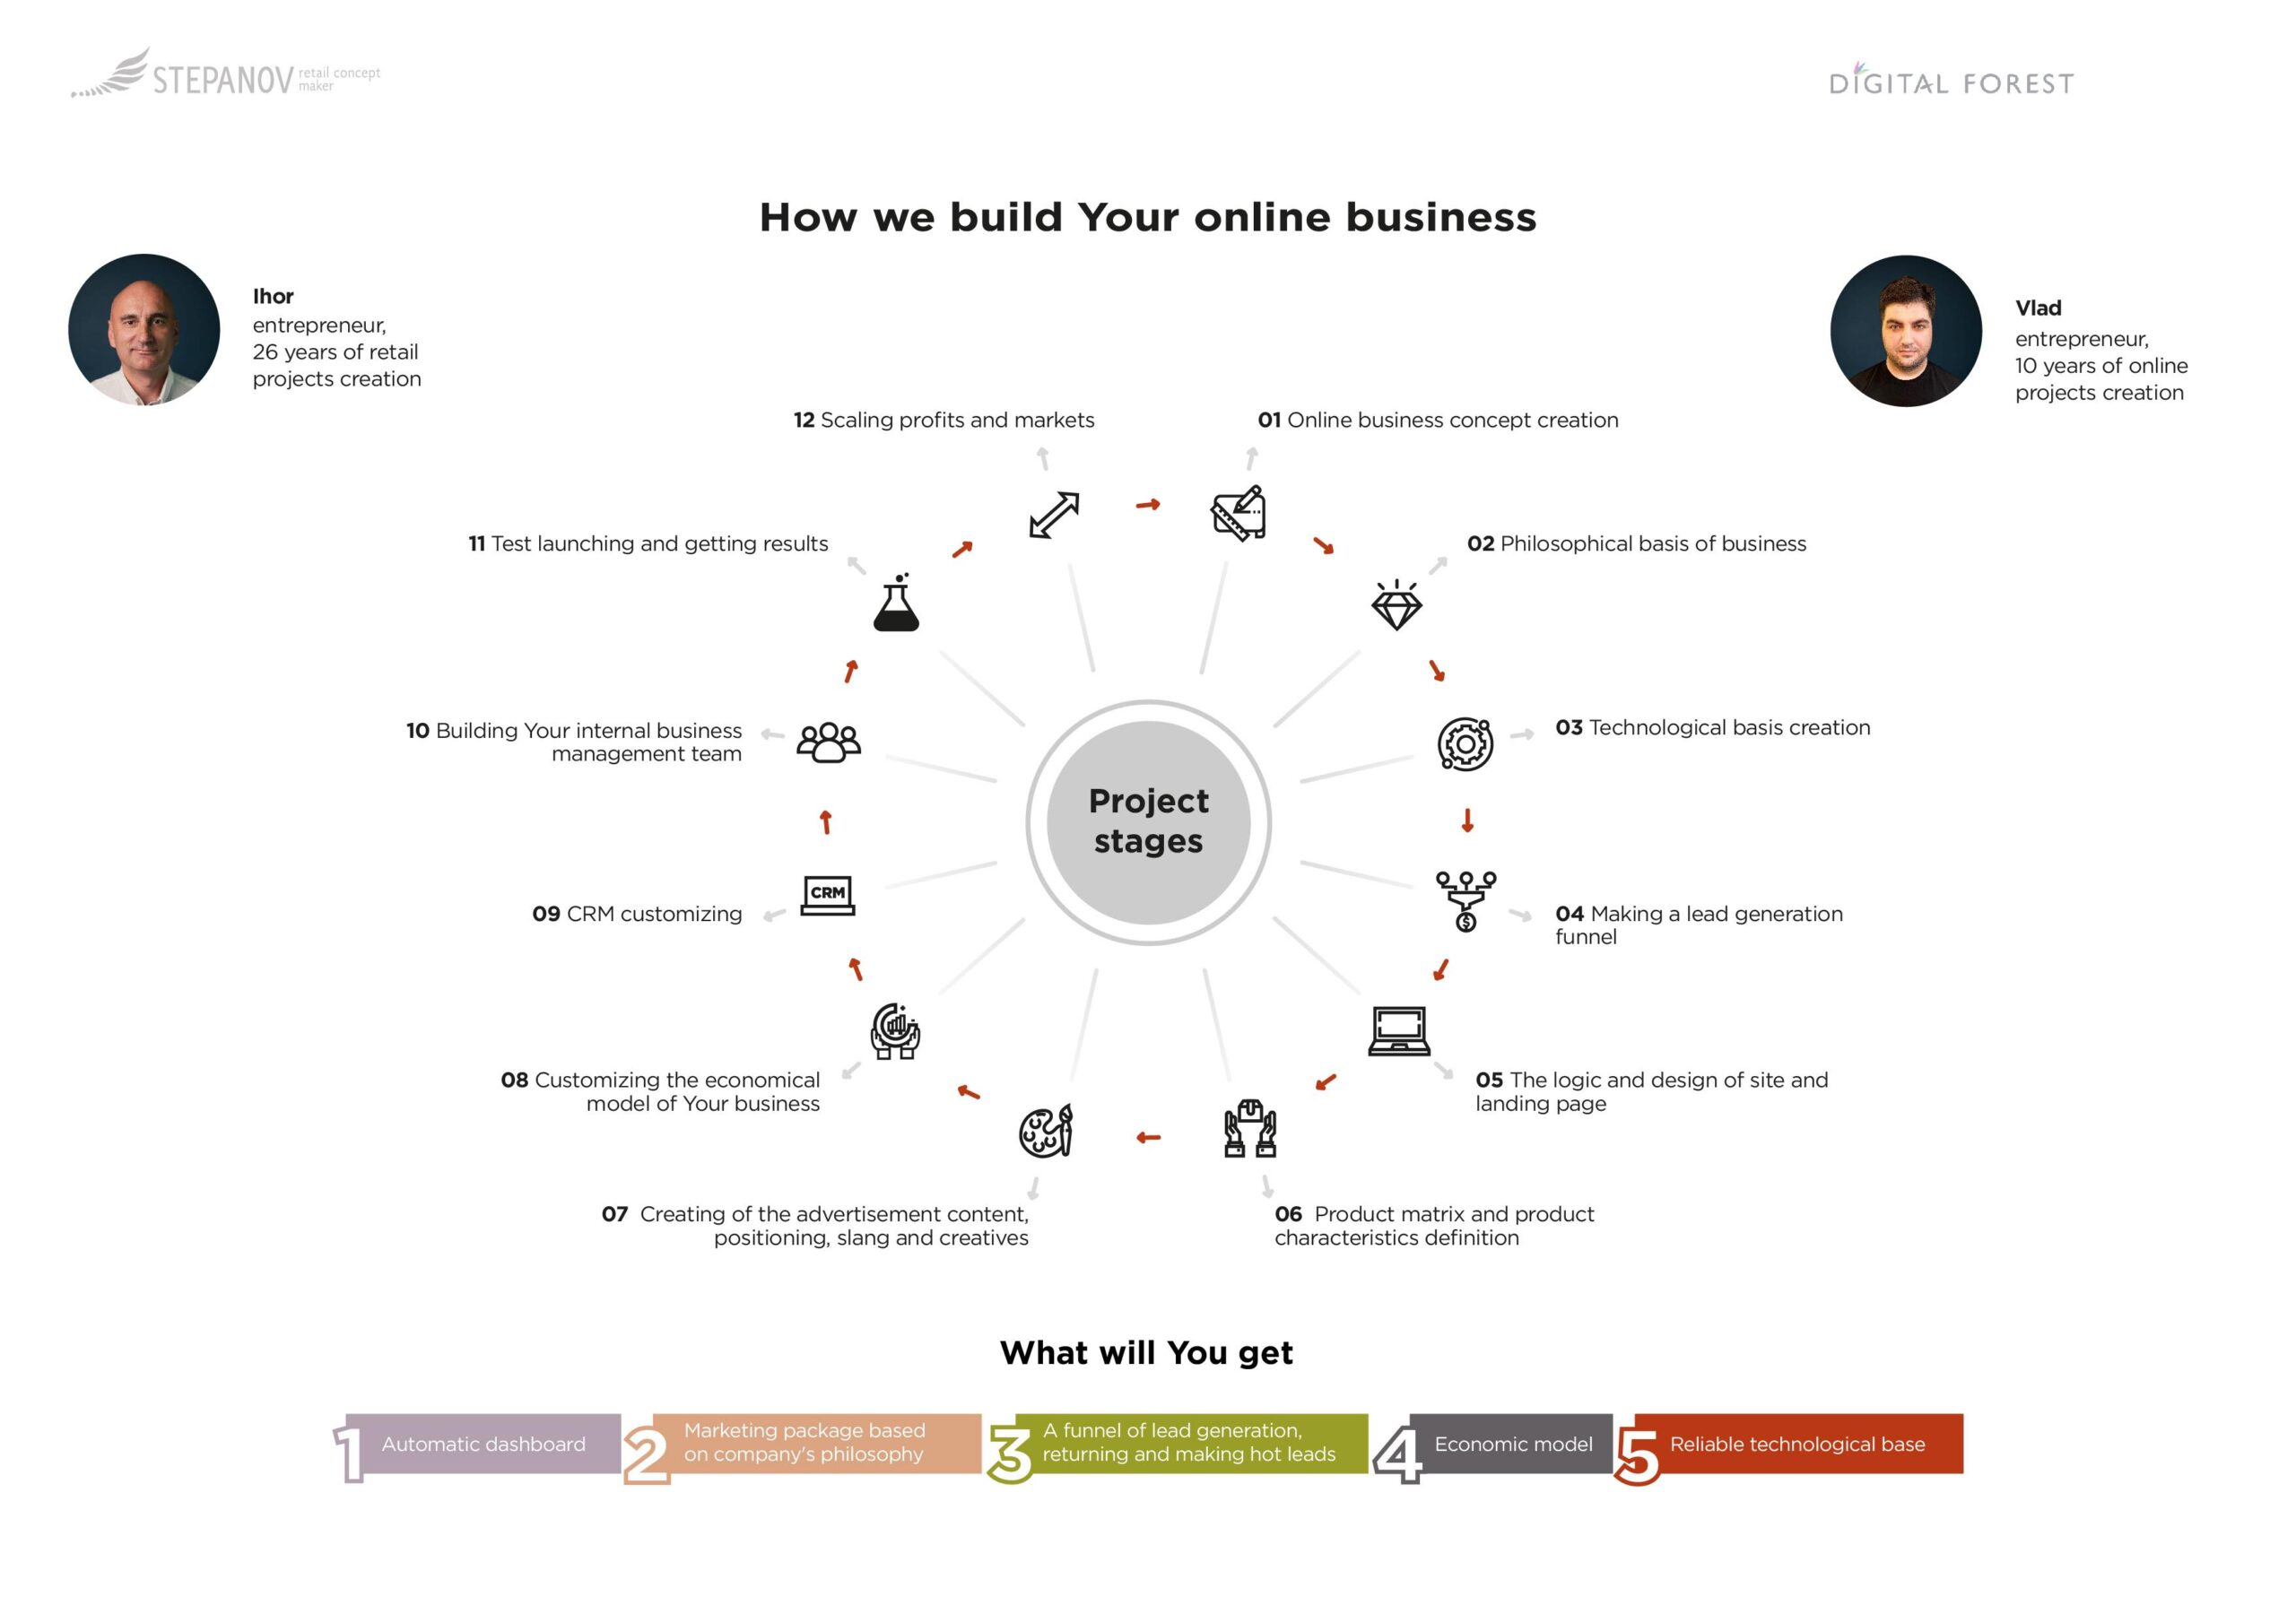 How to build Your online business?